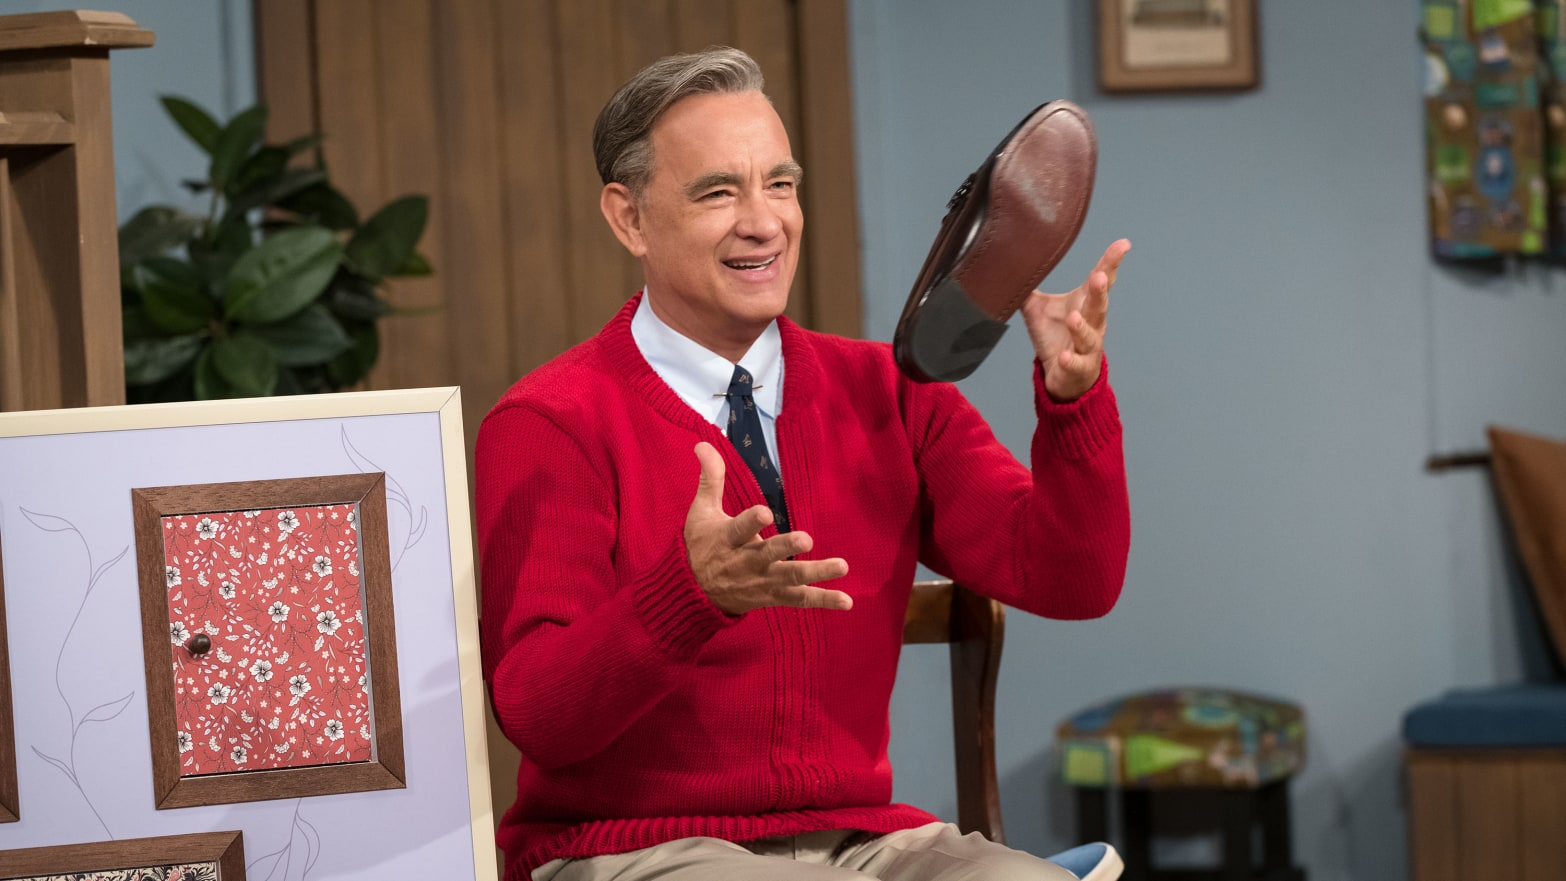 'A Beautiful Day in the Neighborhood': Tom Hanks' Mr. Rogers Film Brings Audience to Tears at Toronto